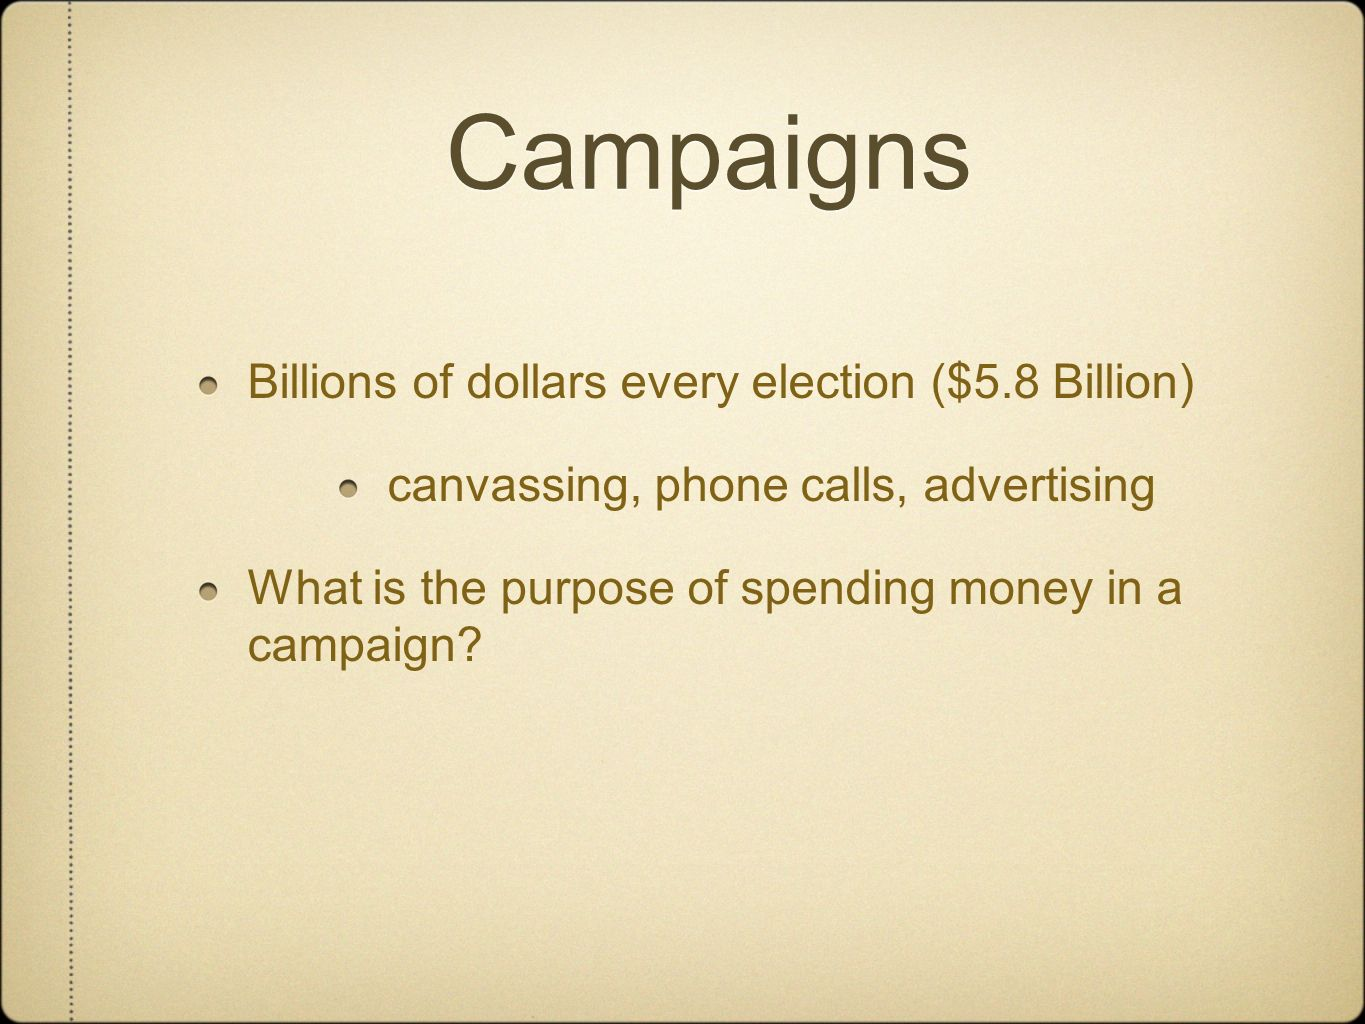 Campaigns Billions of dollars every election ($5.8 Billion)